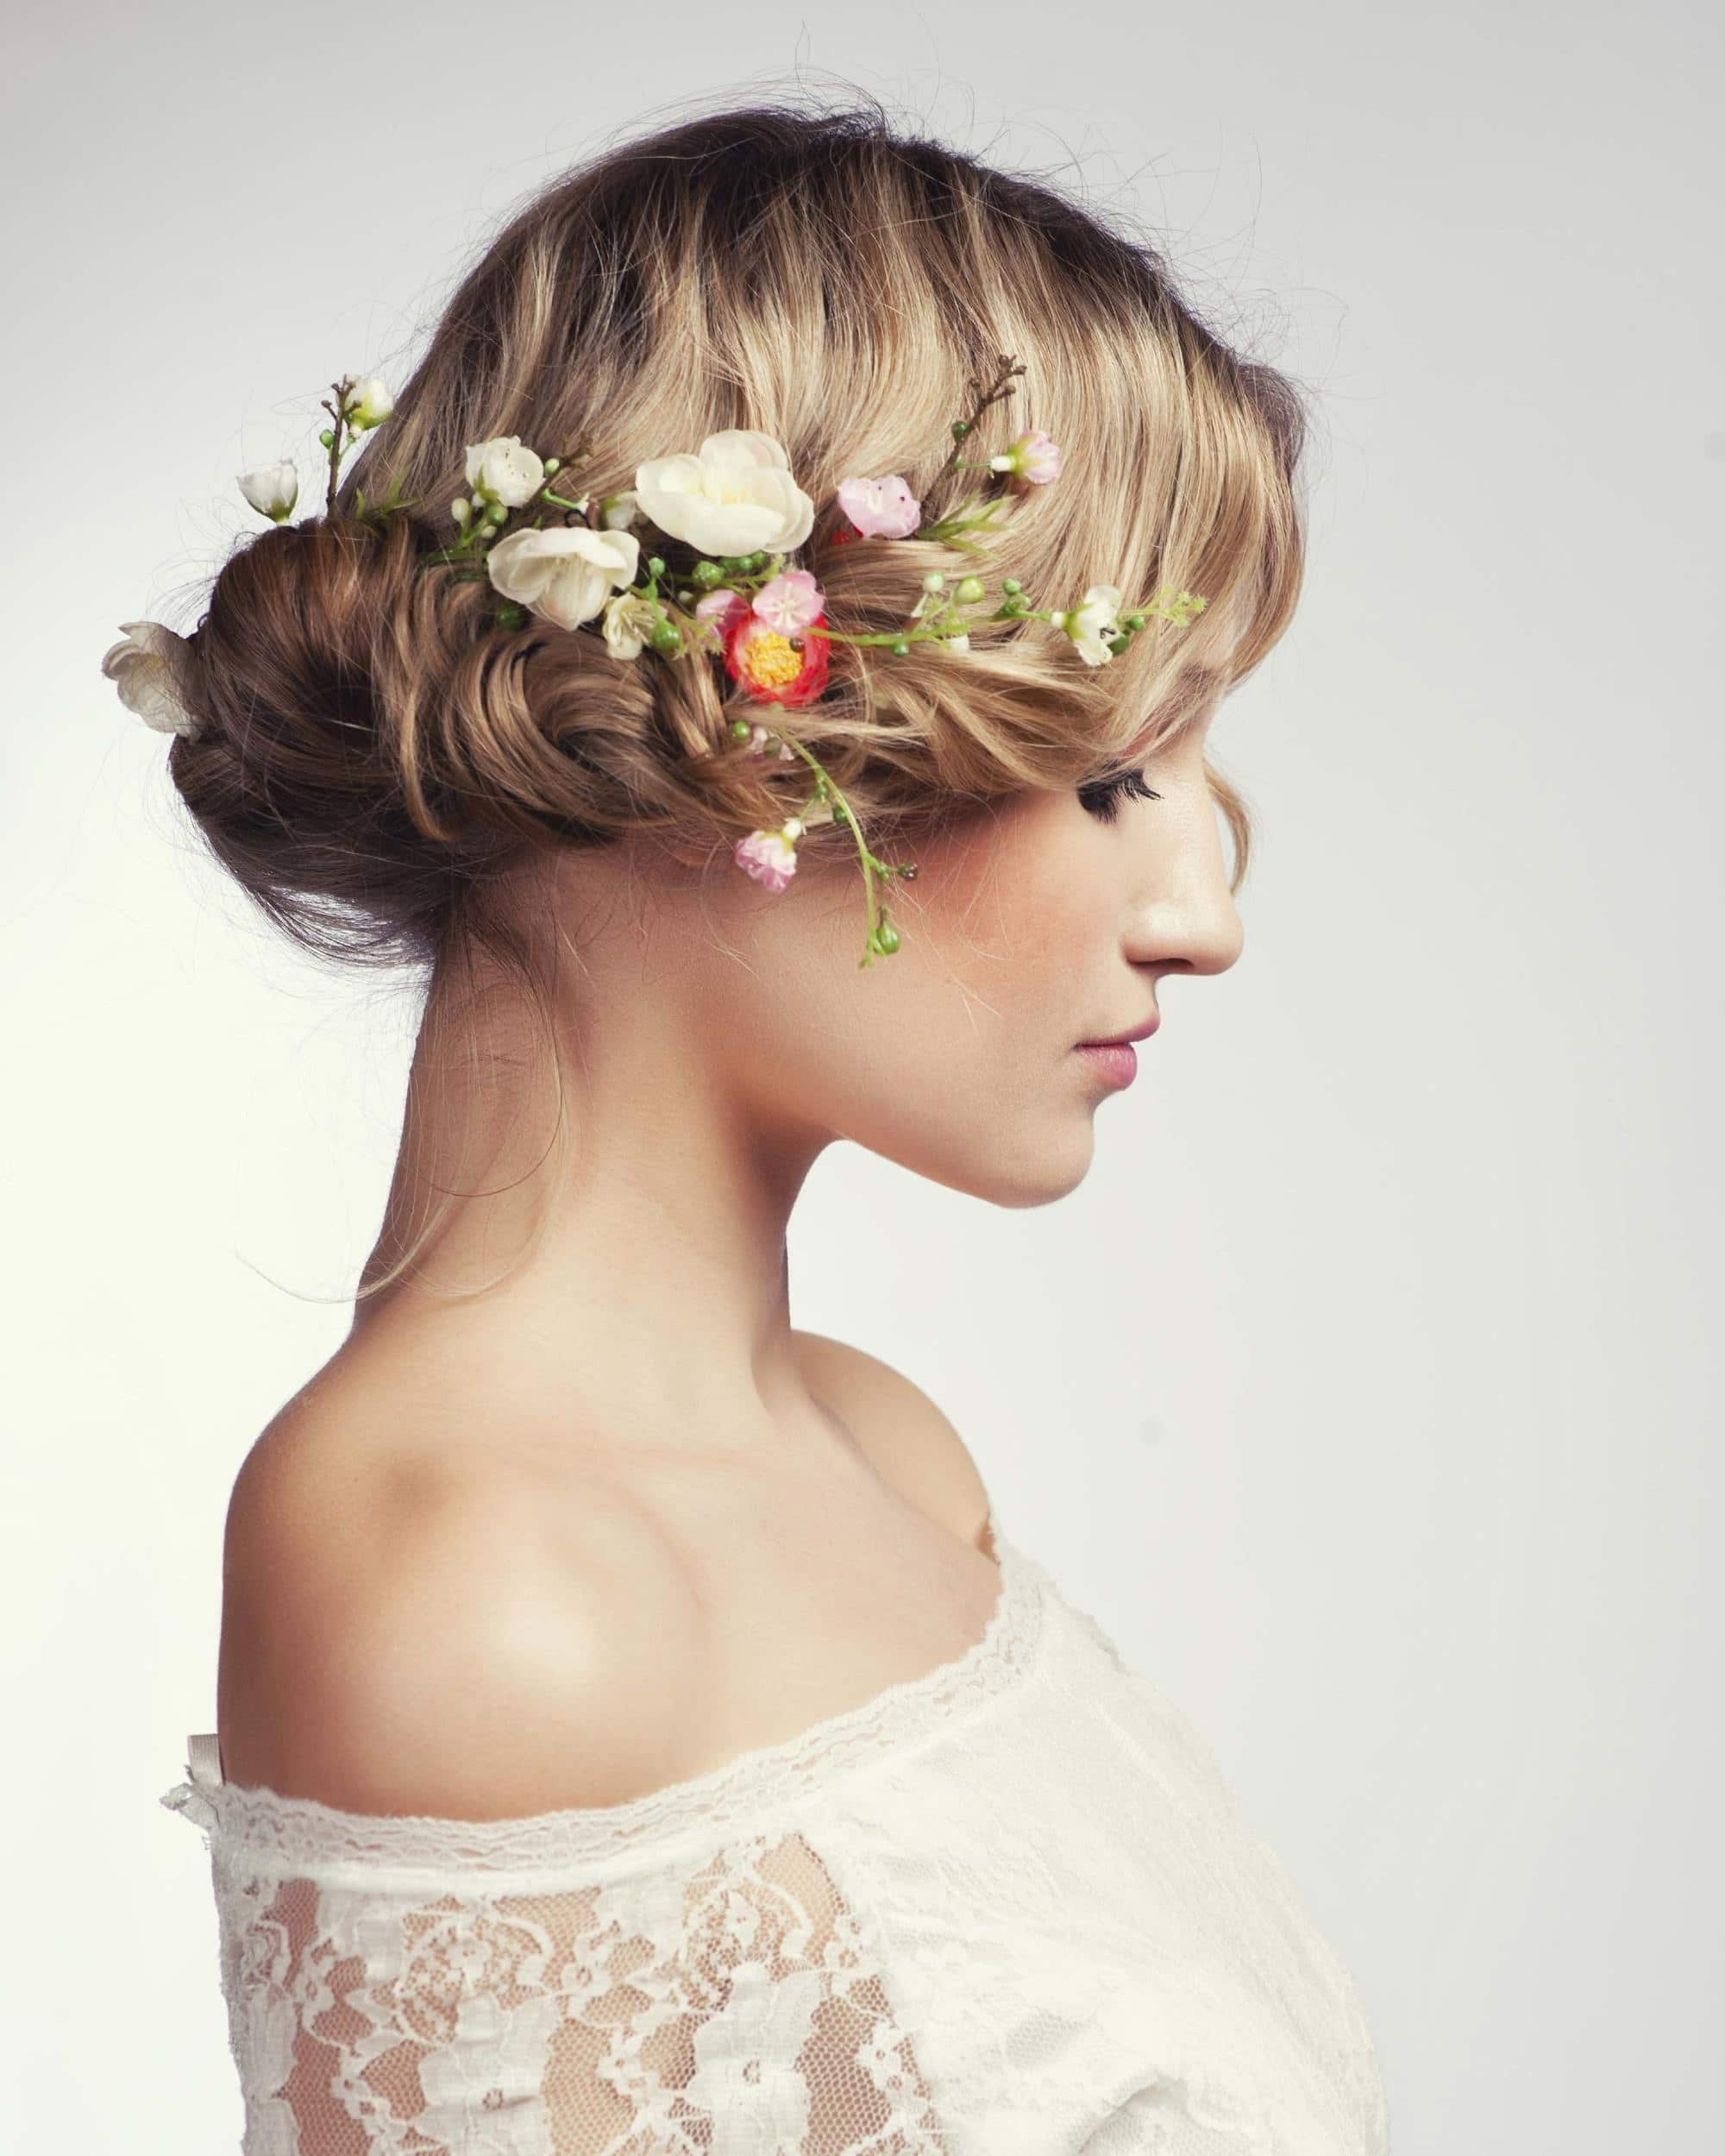 48 Bridal Hairstyles To Inspire Your Wedding Day Look Inside Famous Undone Low Bun Bridal Hairstyles With Floral Headband (View 11 of 20)